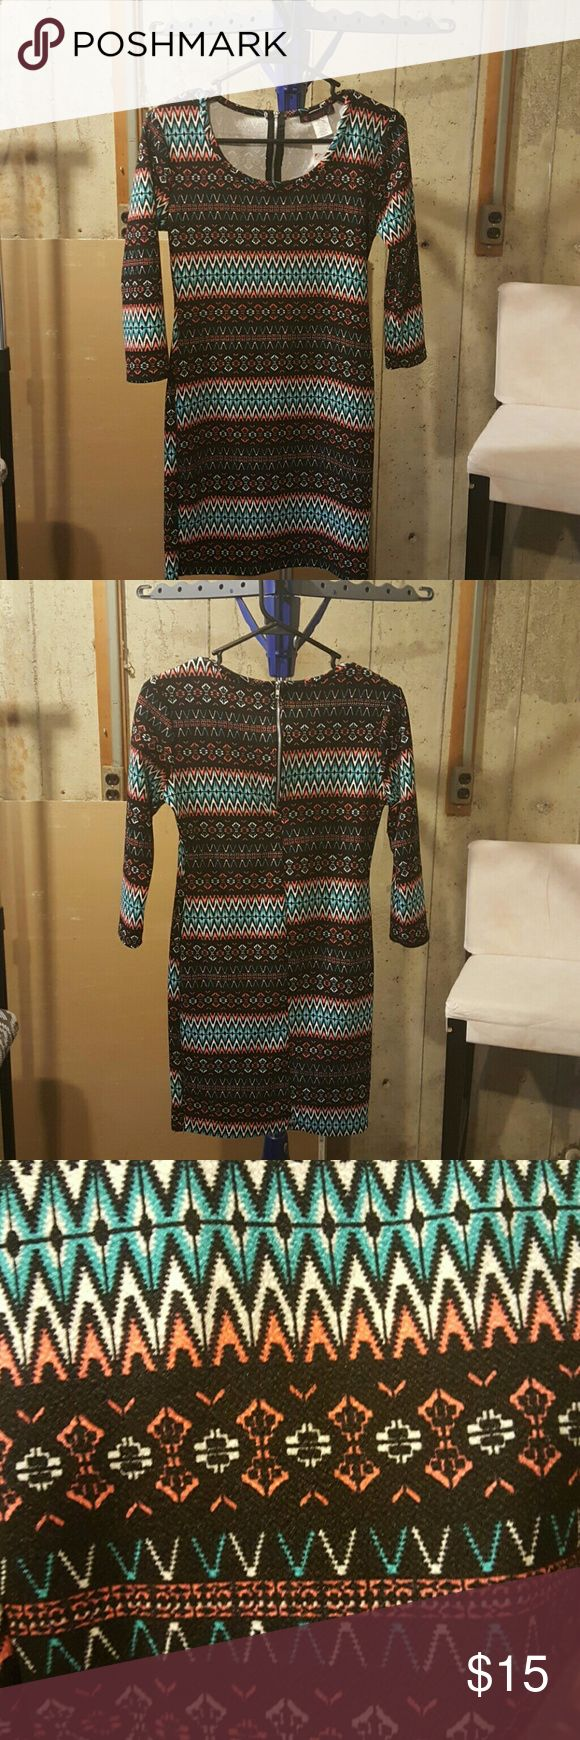 Aztec print dress. Never been worn. Stylish dress ready for a night out Dresses Midi